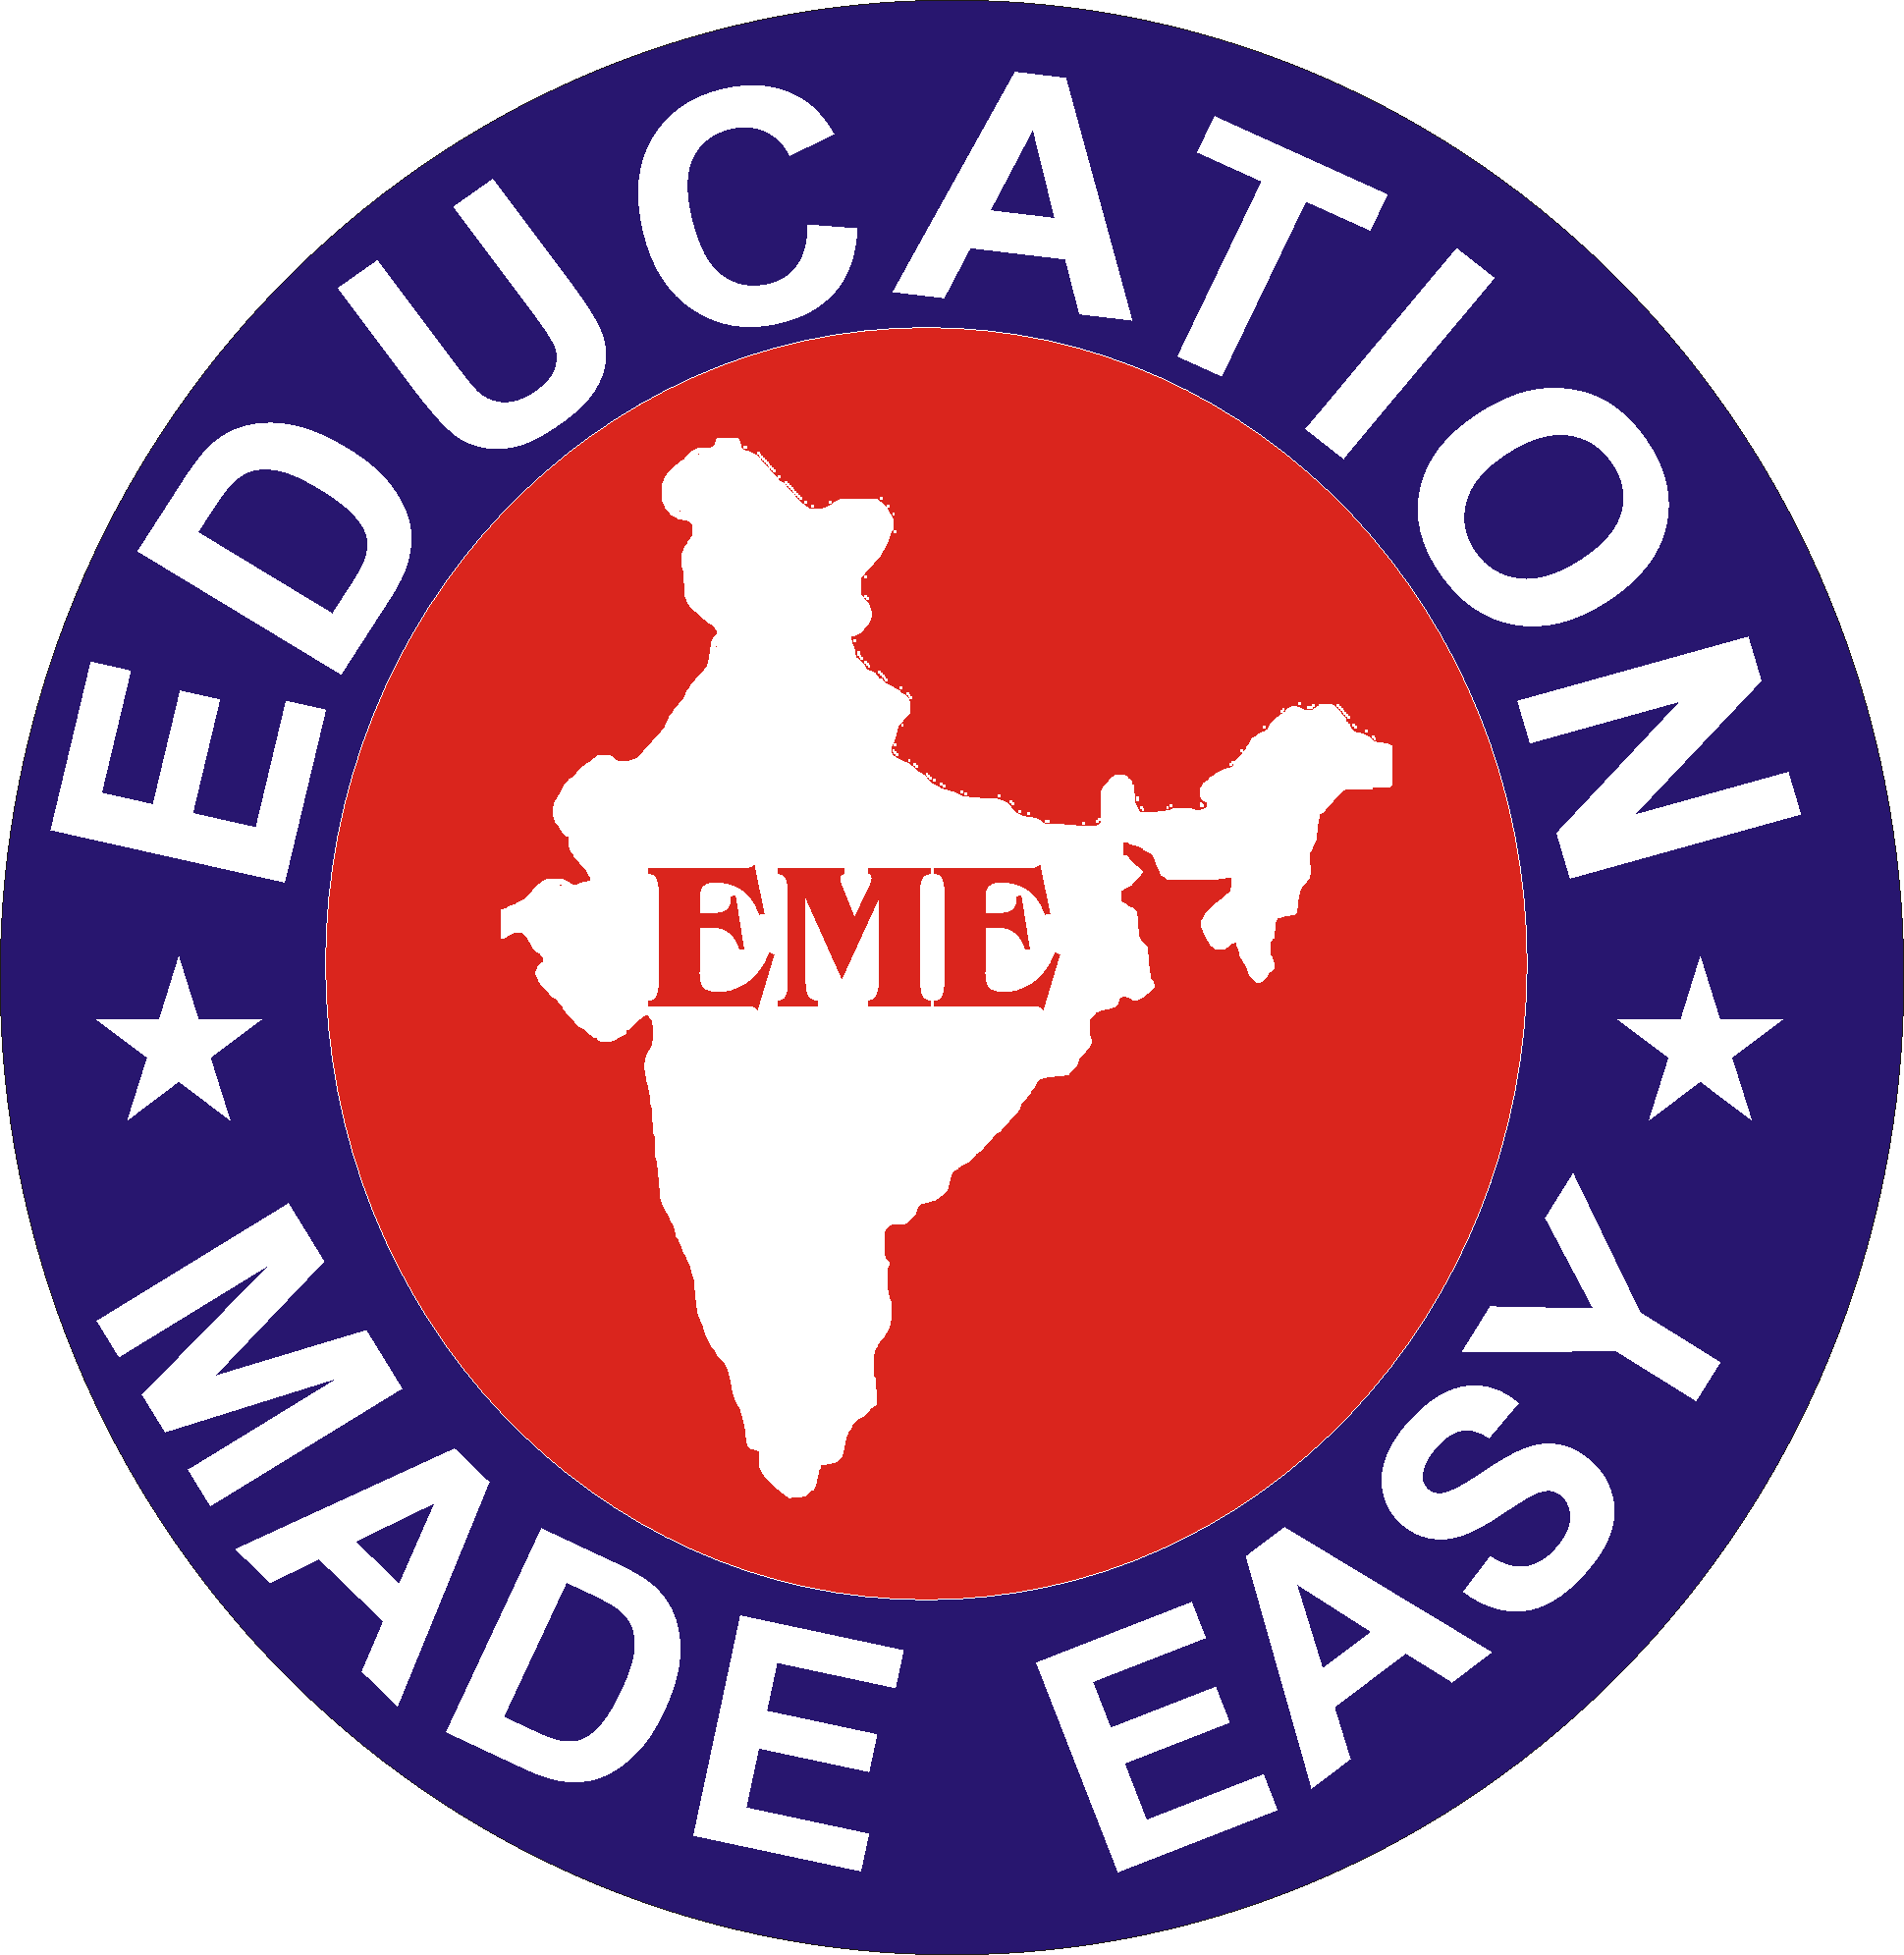 Education Made Easy Call For Admissions 9216880451 - logo